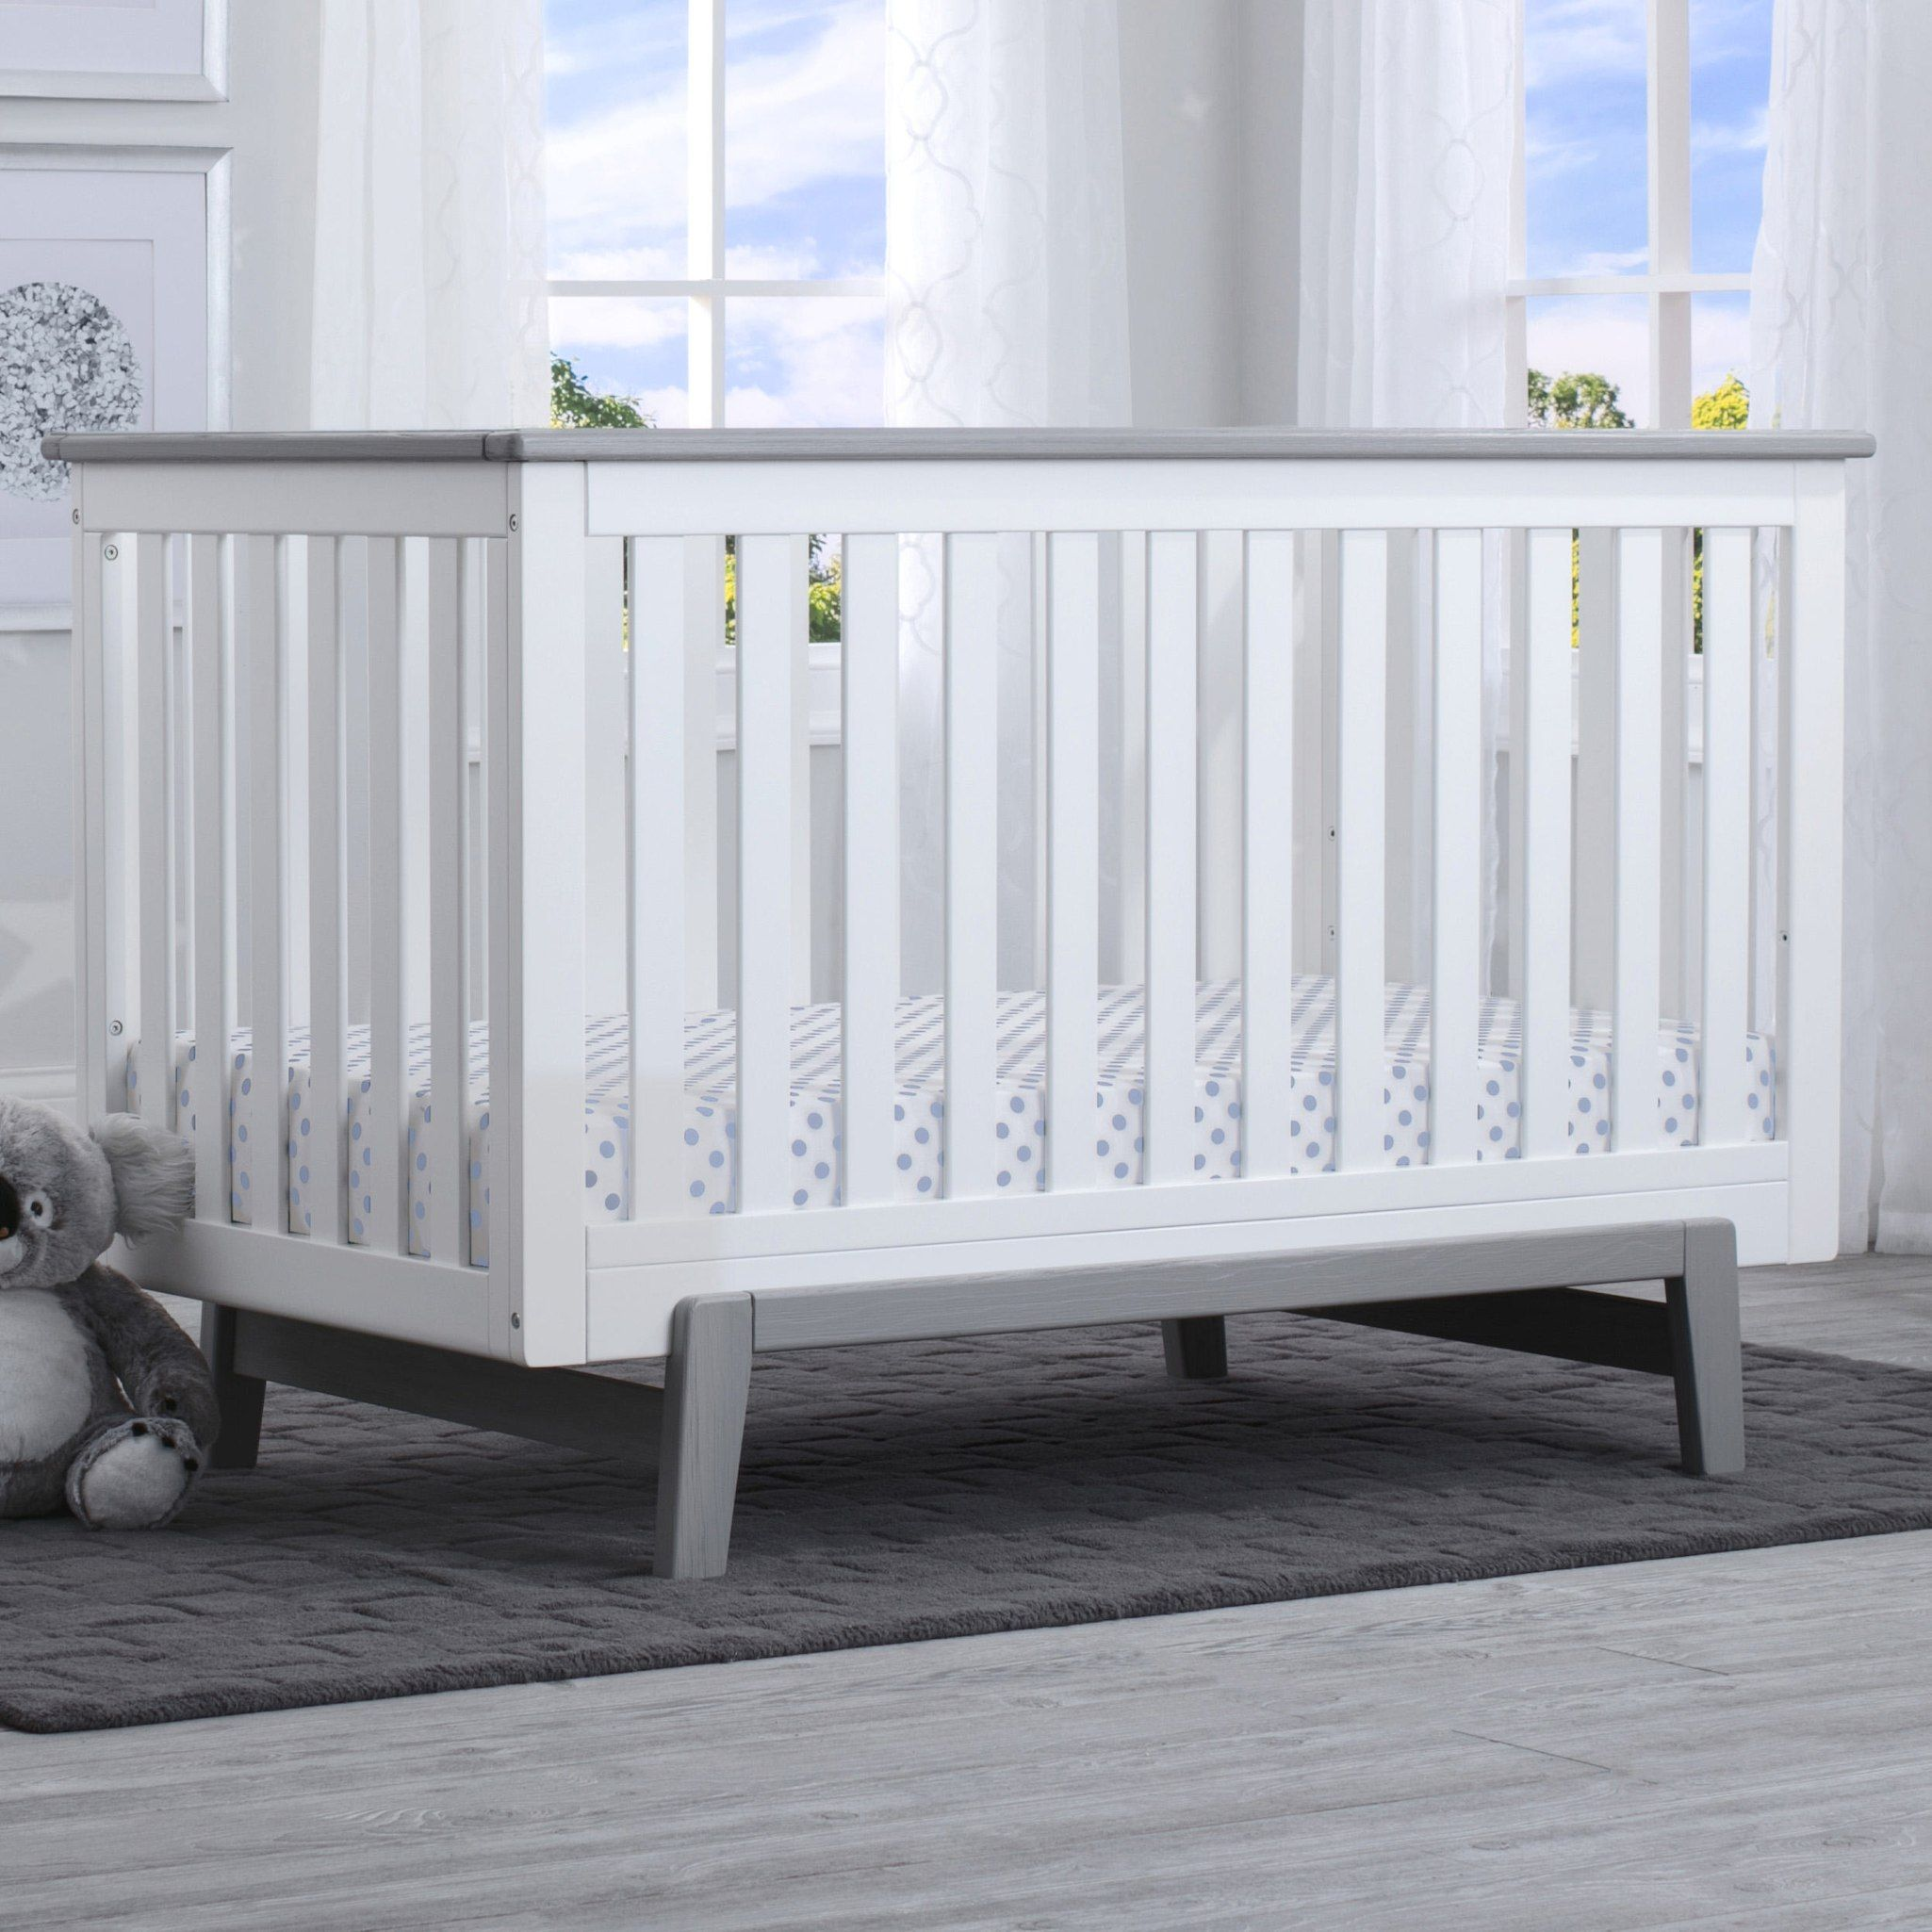 elephant bed cribs baby r full room crib themes us target size sets bedding nursery for of walmart girls babies